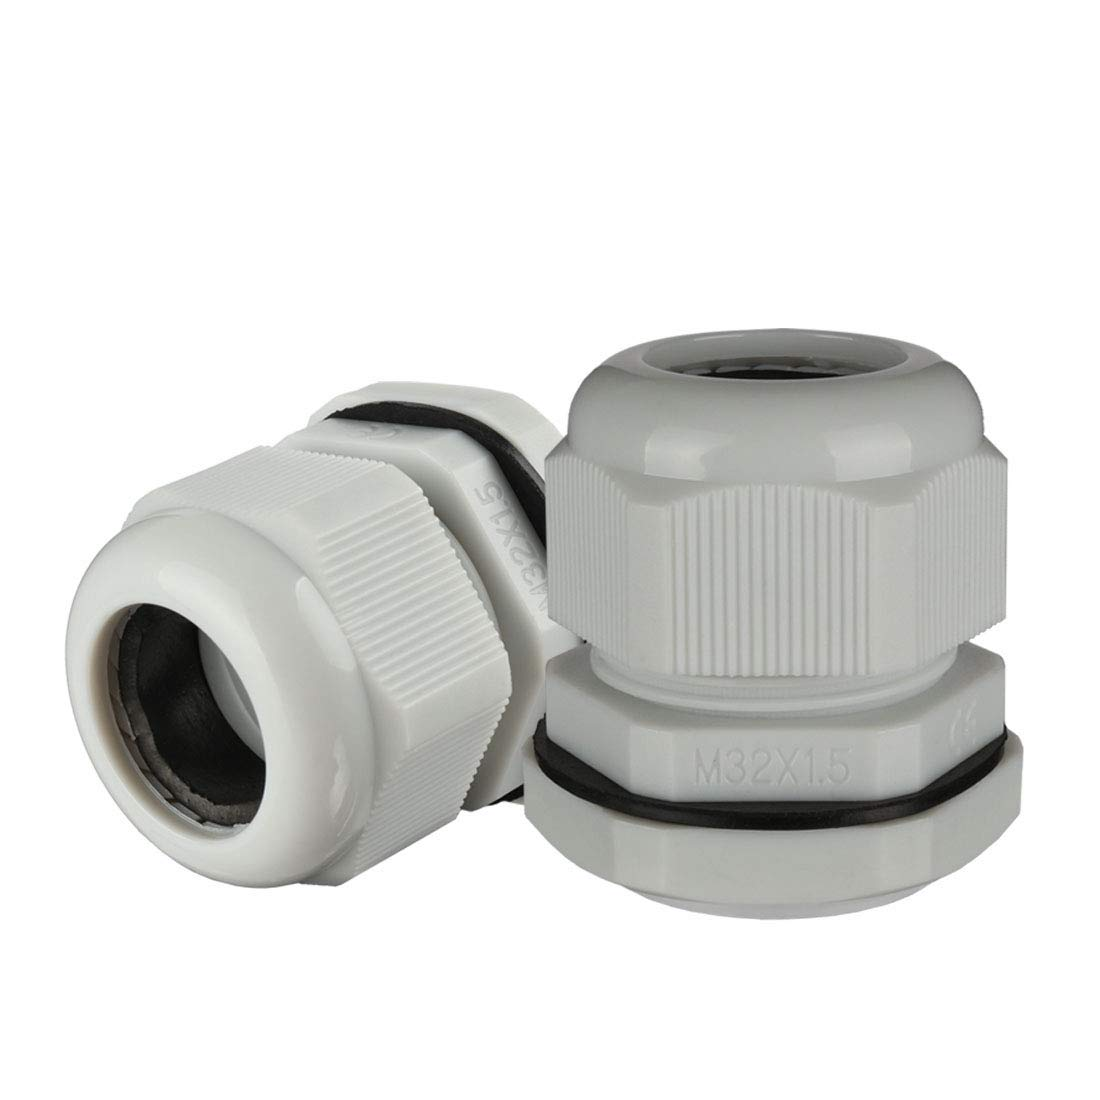 uxcell M22 Cable Gland Waterproof Plastic Joint Adjustable Locknut White for 10mm-13mm Dia Cable Wire 5 Pcs